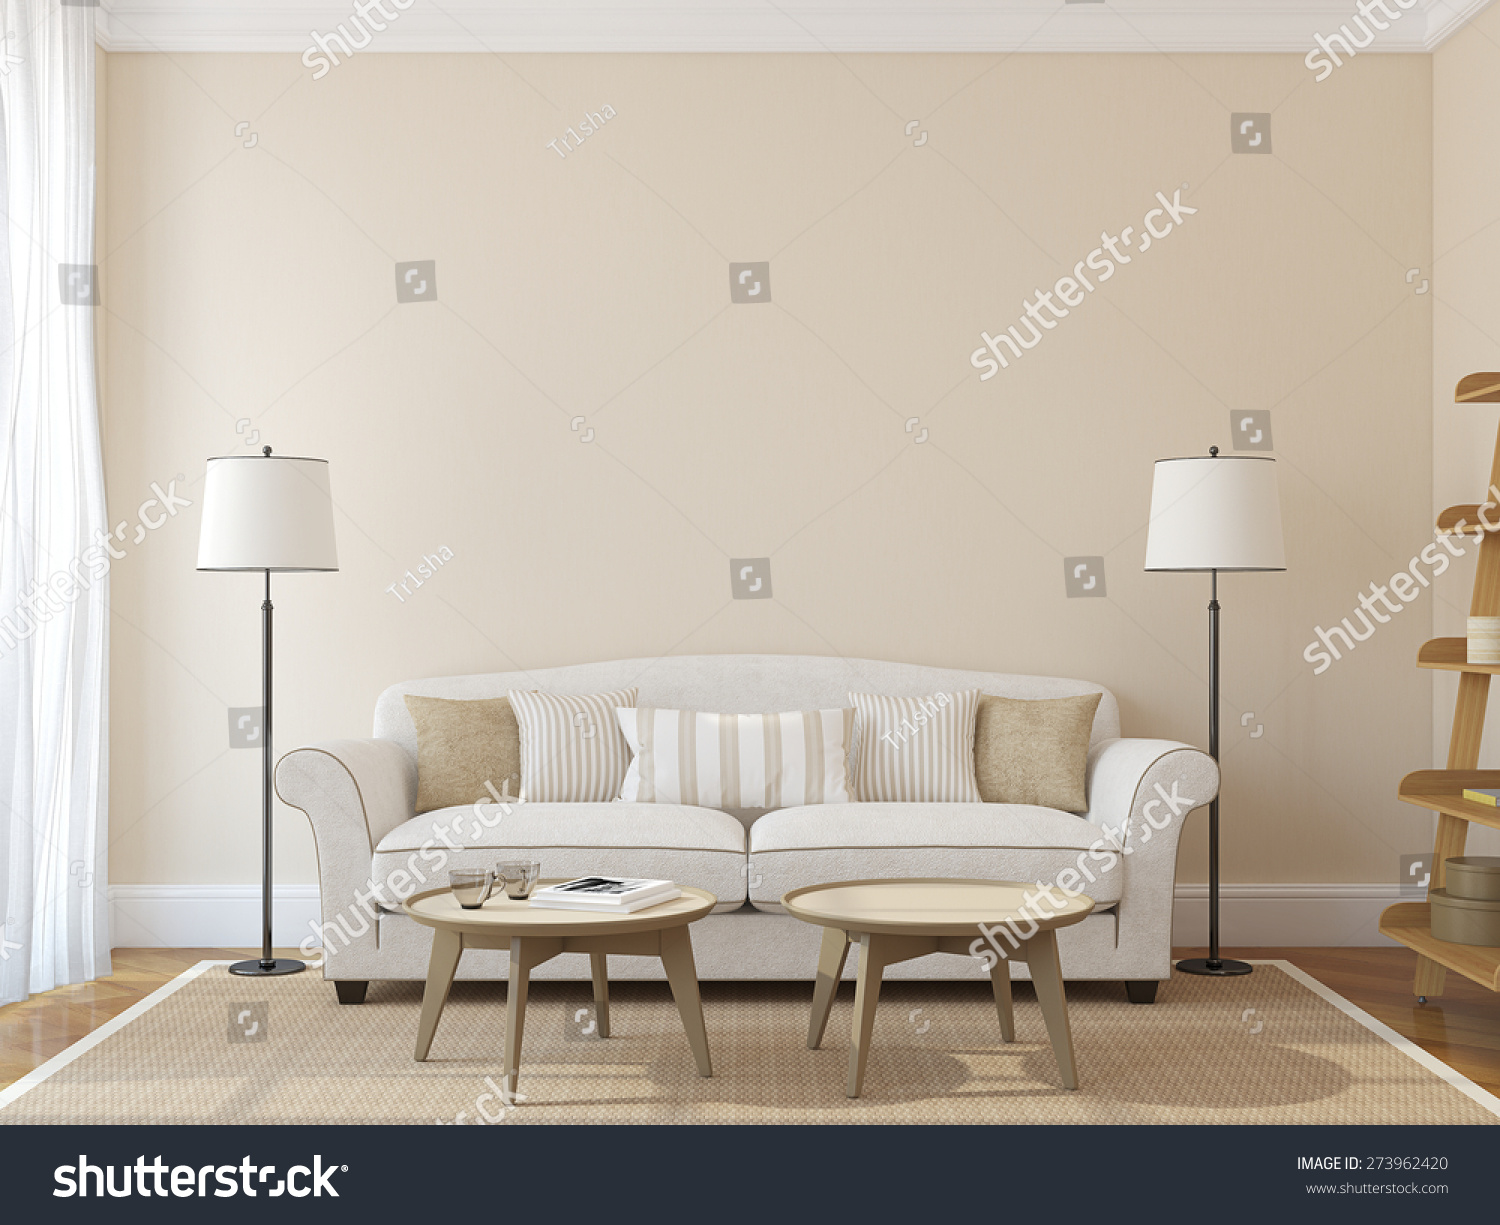 Living Room Beige Living Room Walls modern living room interior with white couch near empty beige wall save to a lightbox